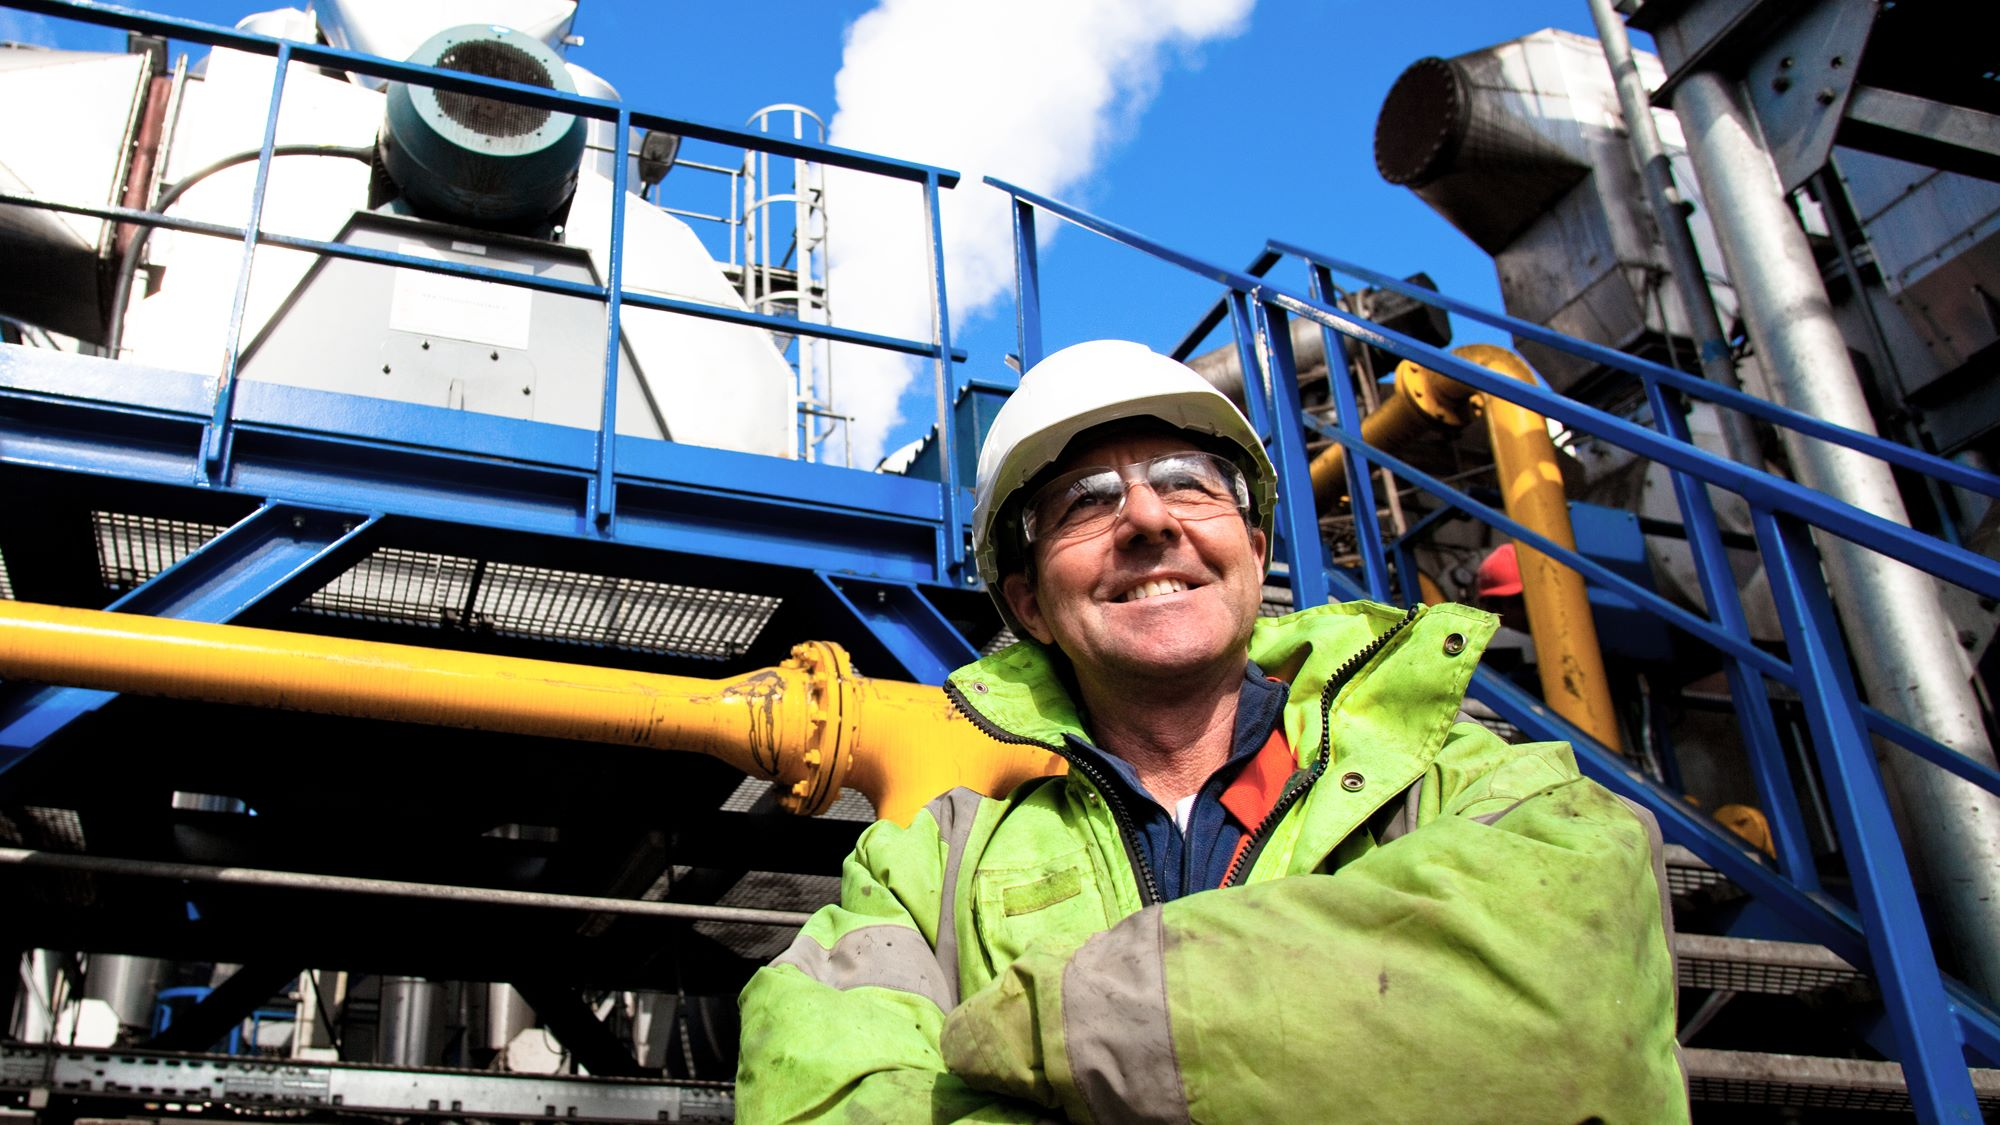 SUEZ who are you header image. Image of worker smiling  in safety hat and goggles at industrial plant